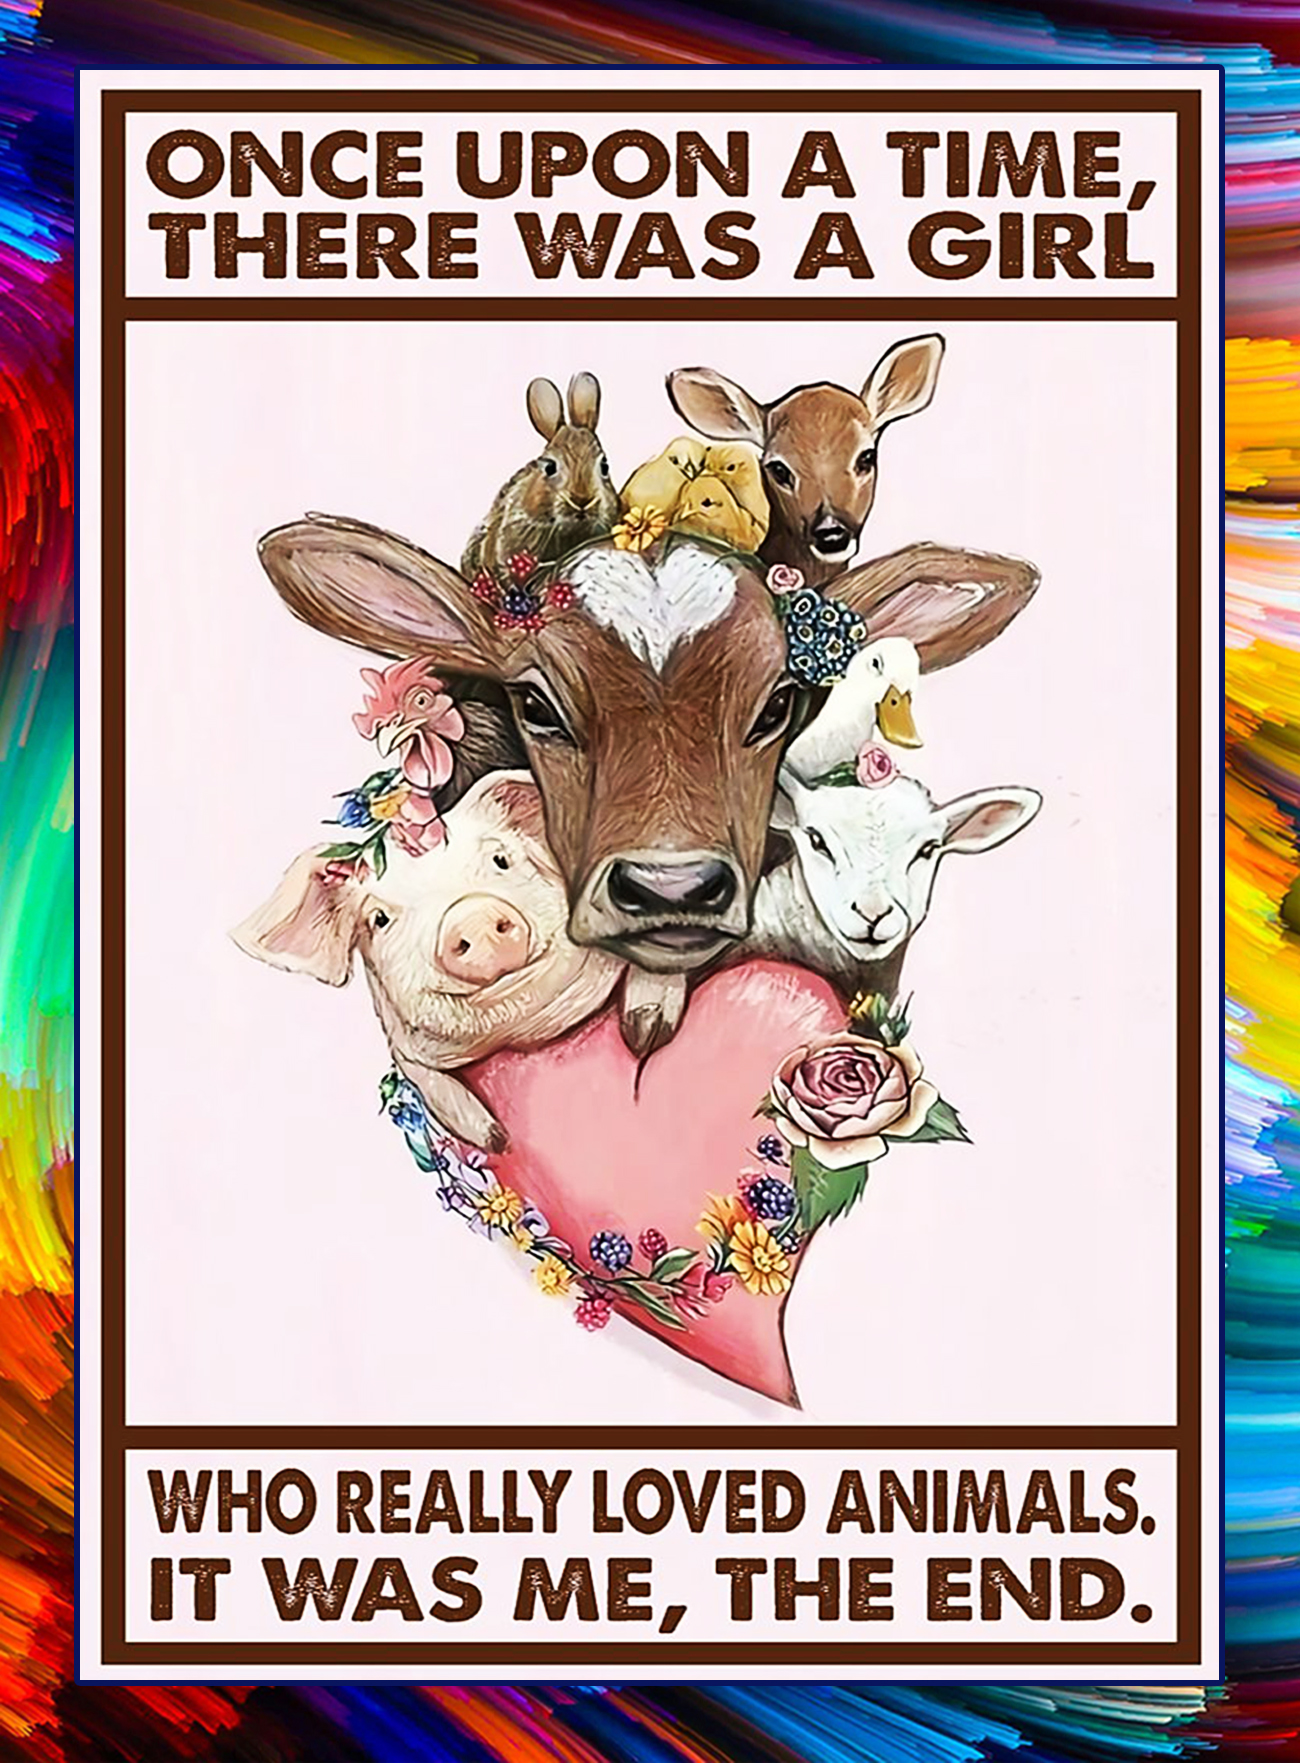 Vegan once upon a time there was a girl who really loved animals poster